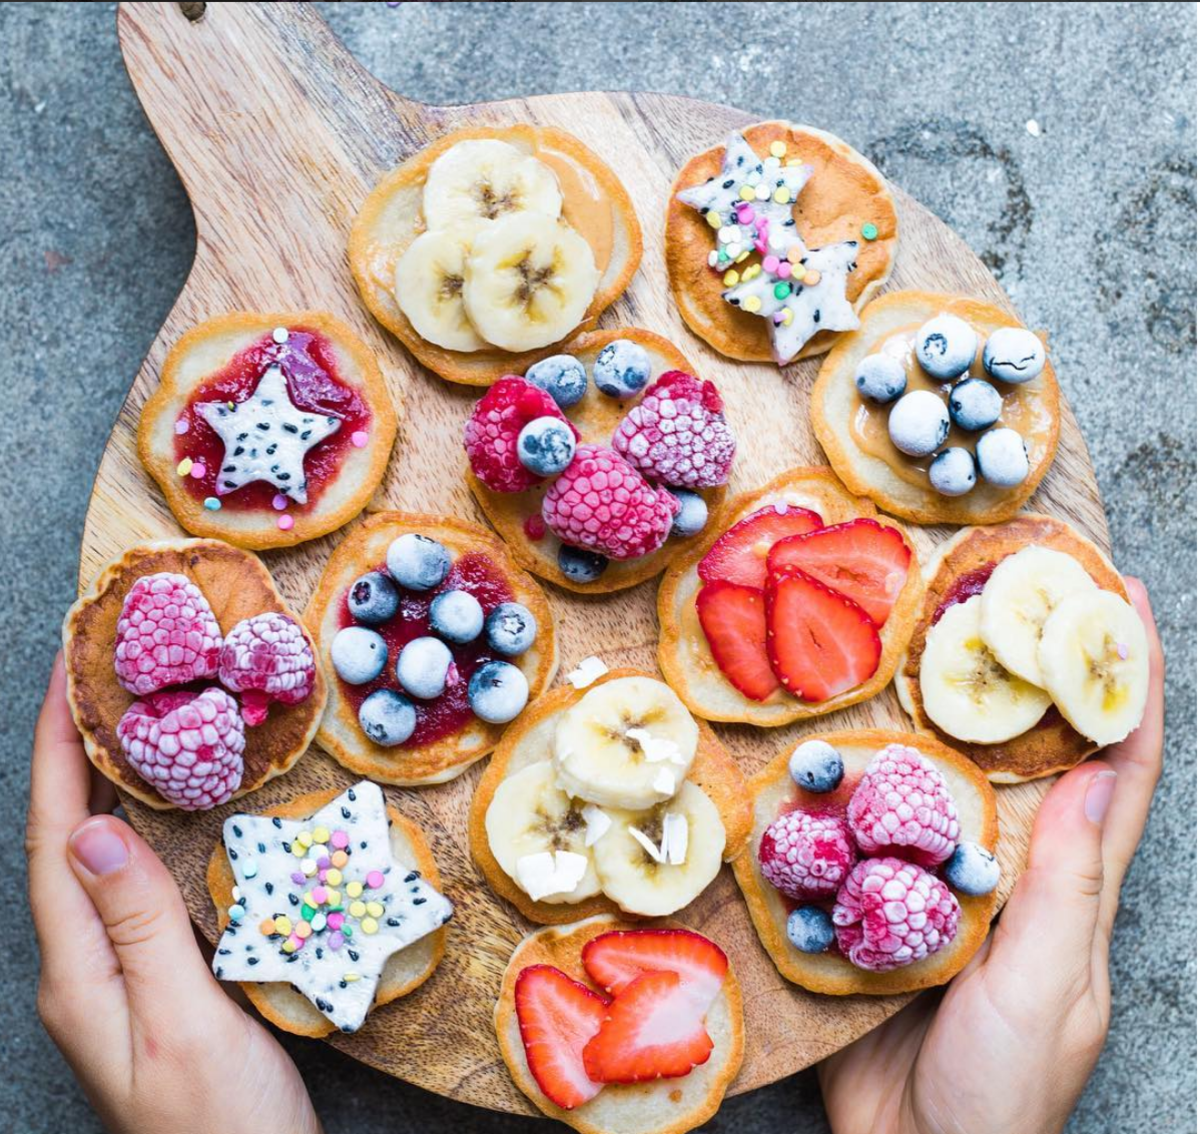 15 instagrammers for the best drool worthy rainbow and unicorn recipes ig accounts for healthy recipes image via anettvelsberginstagram forumfinder Gallery